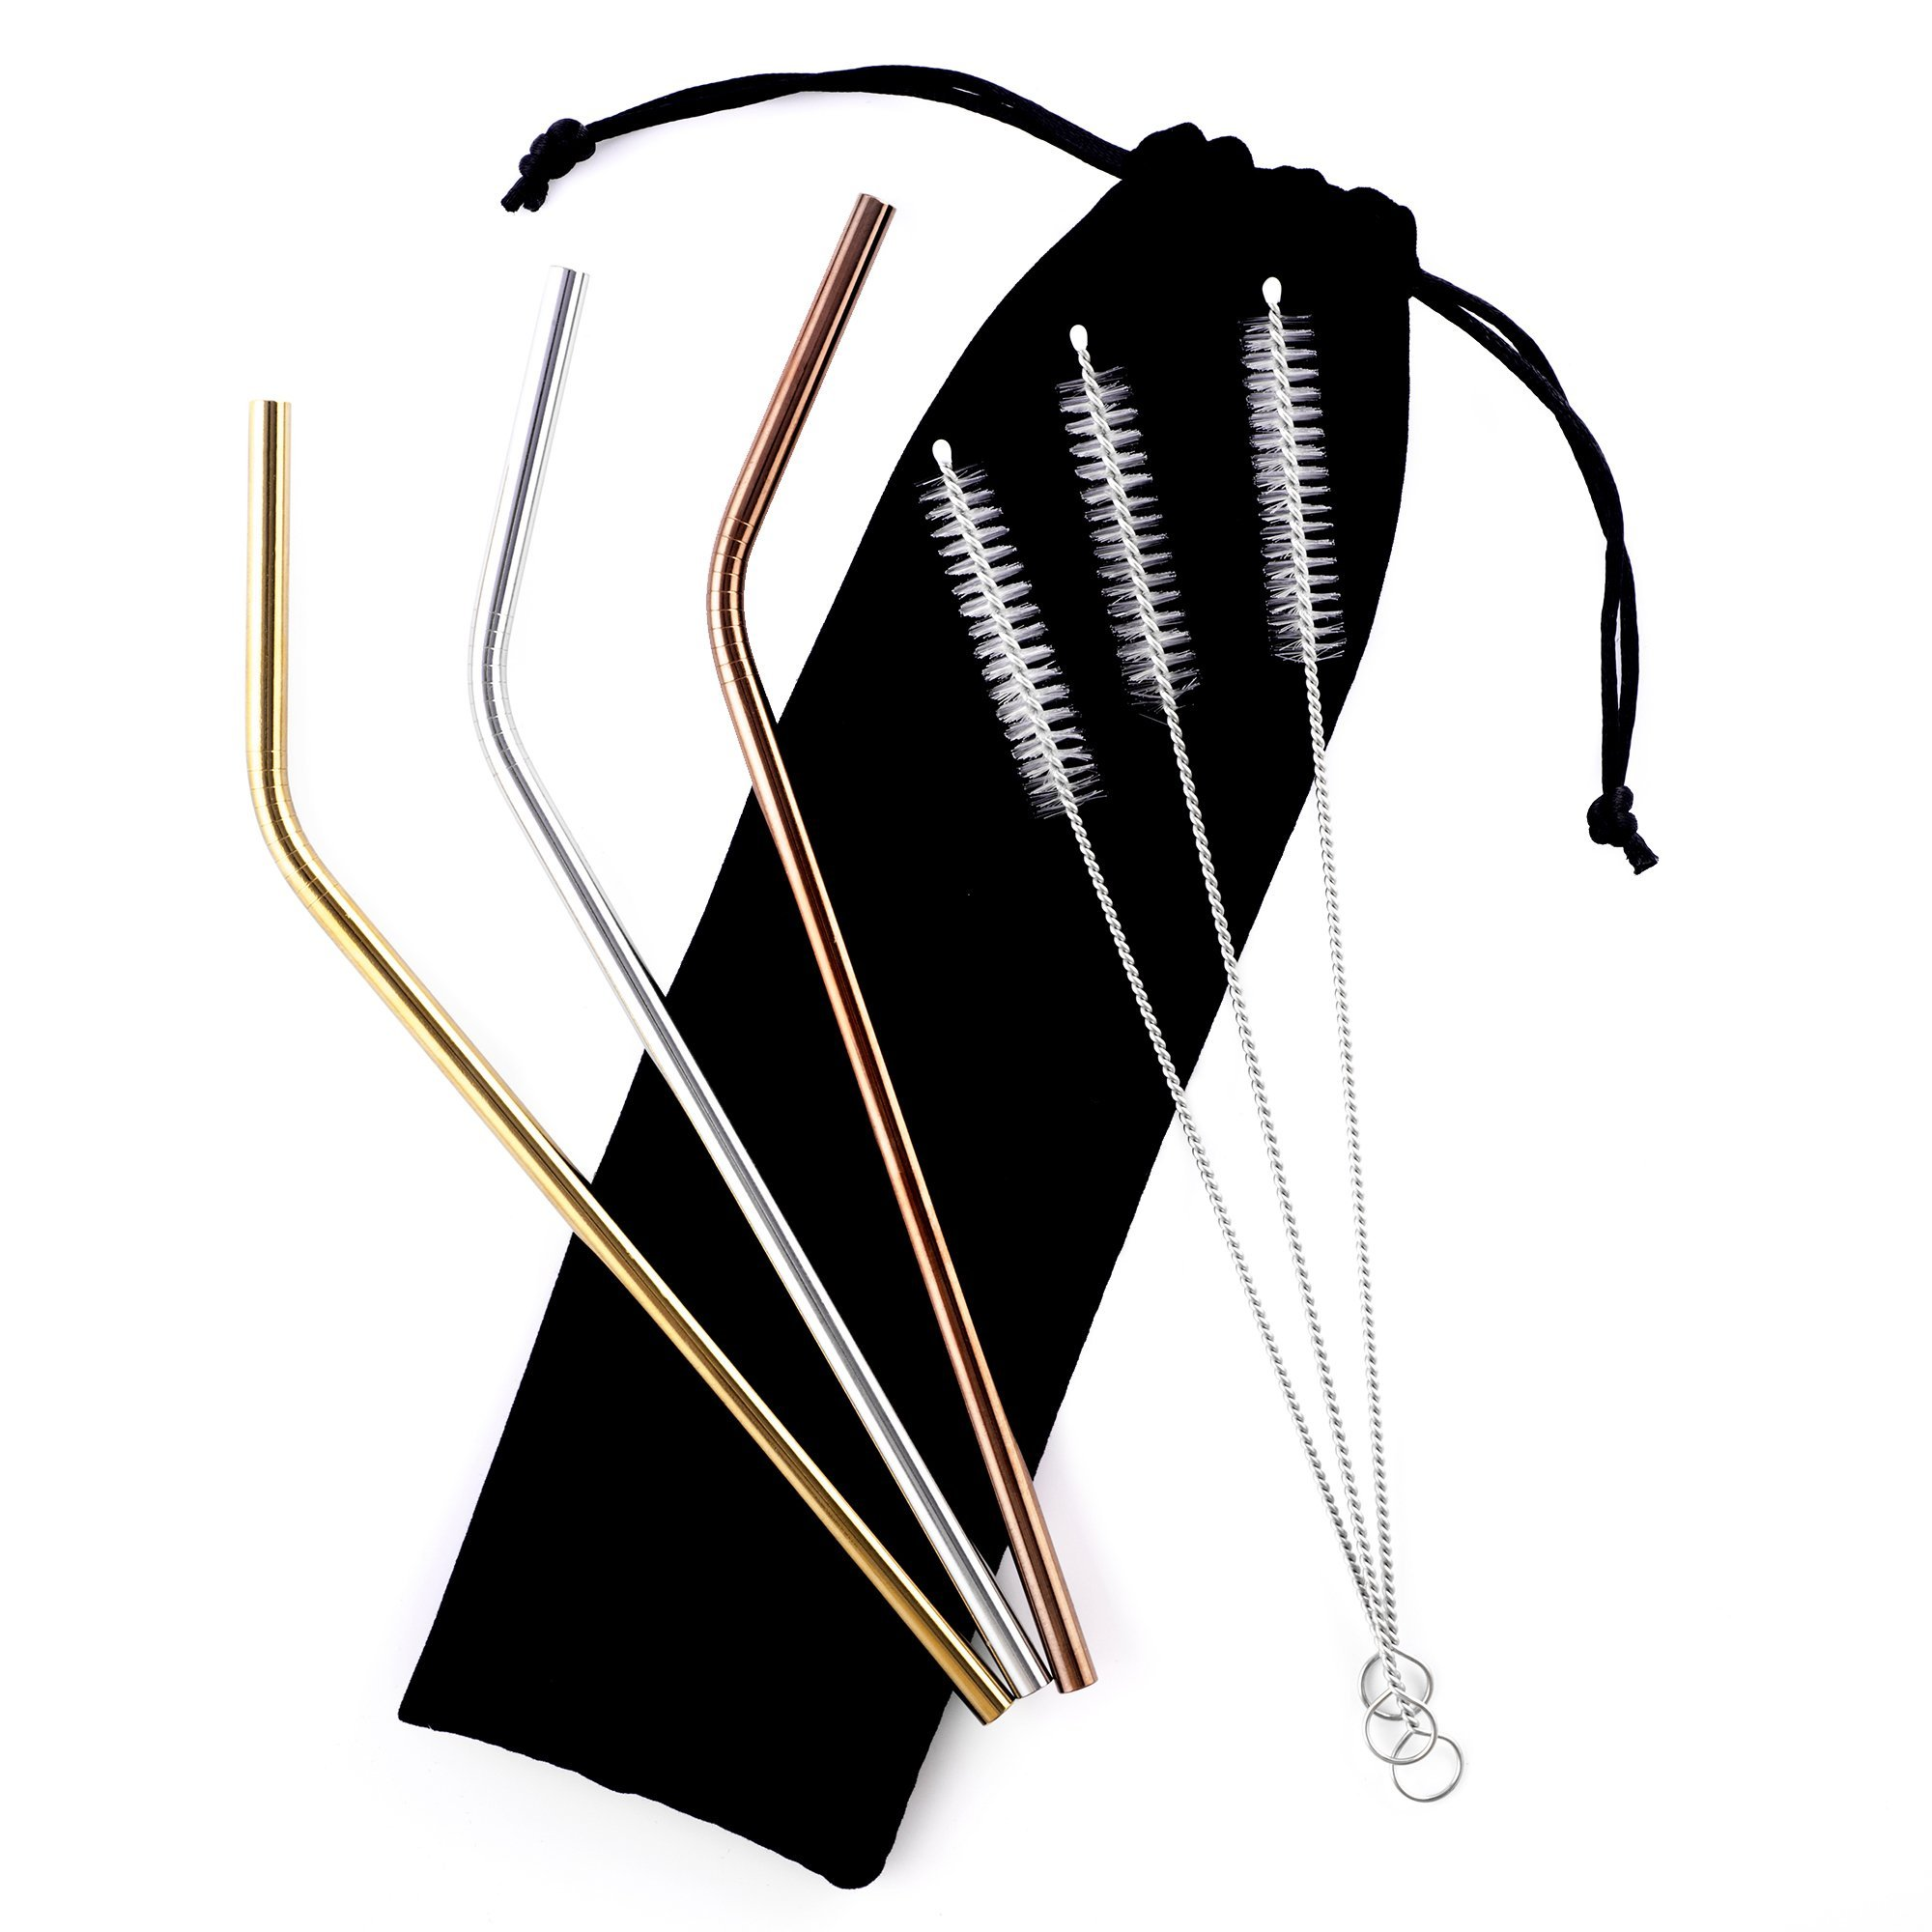 AINutri Stainless Steel Straws for 20 oz Tumblers, Set of 3 Reusable Multi-Color 8.5 Inch x 6 mm Metal Straws, 3 Cleaning Brushes and Carry Bag